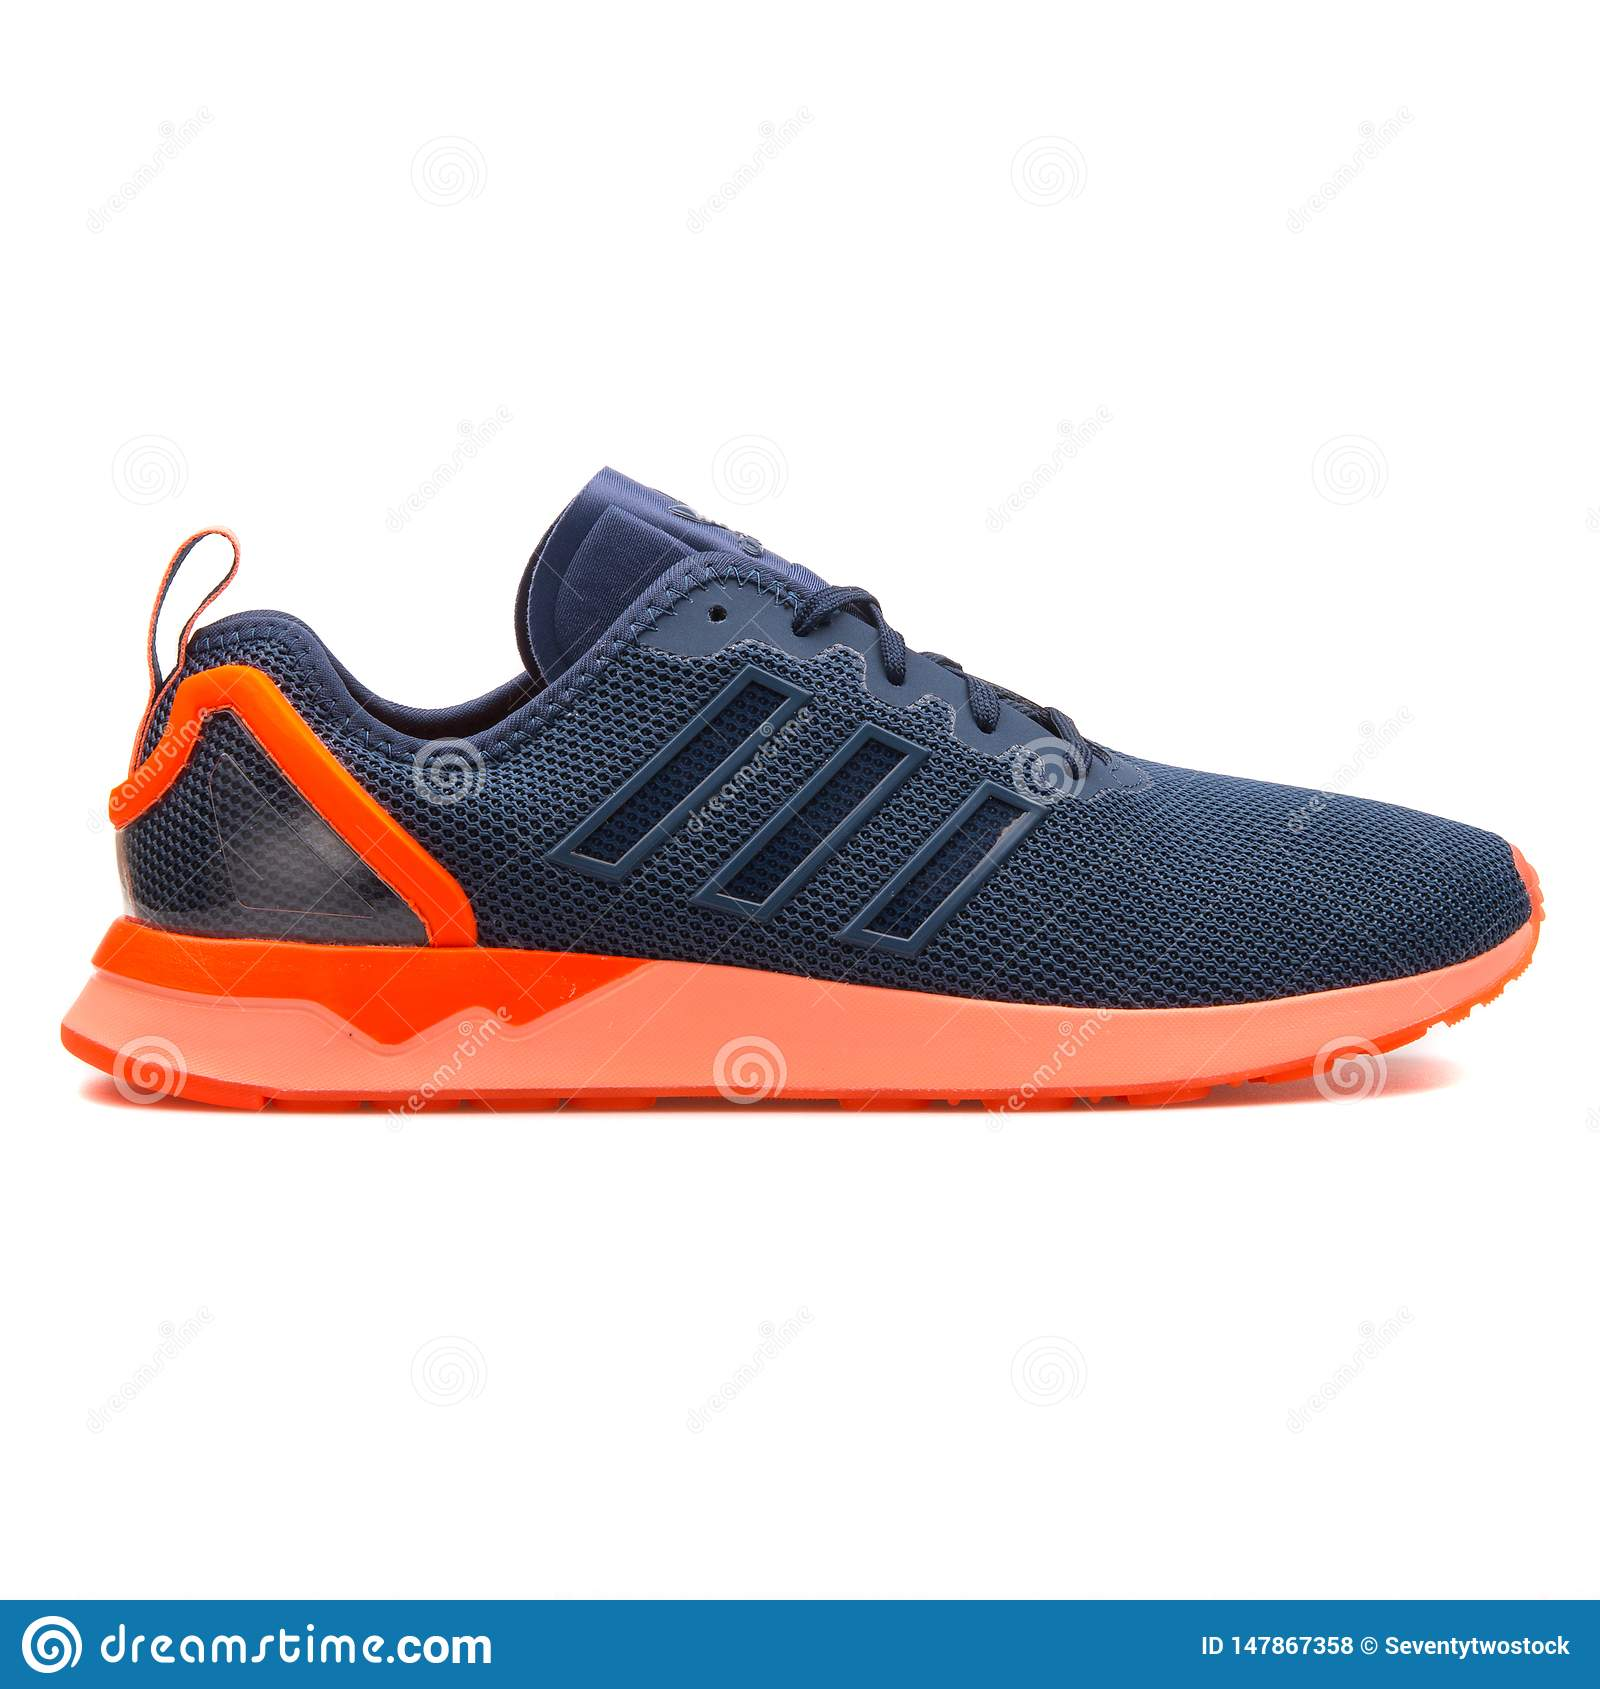 adidas flux grey and blue